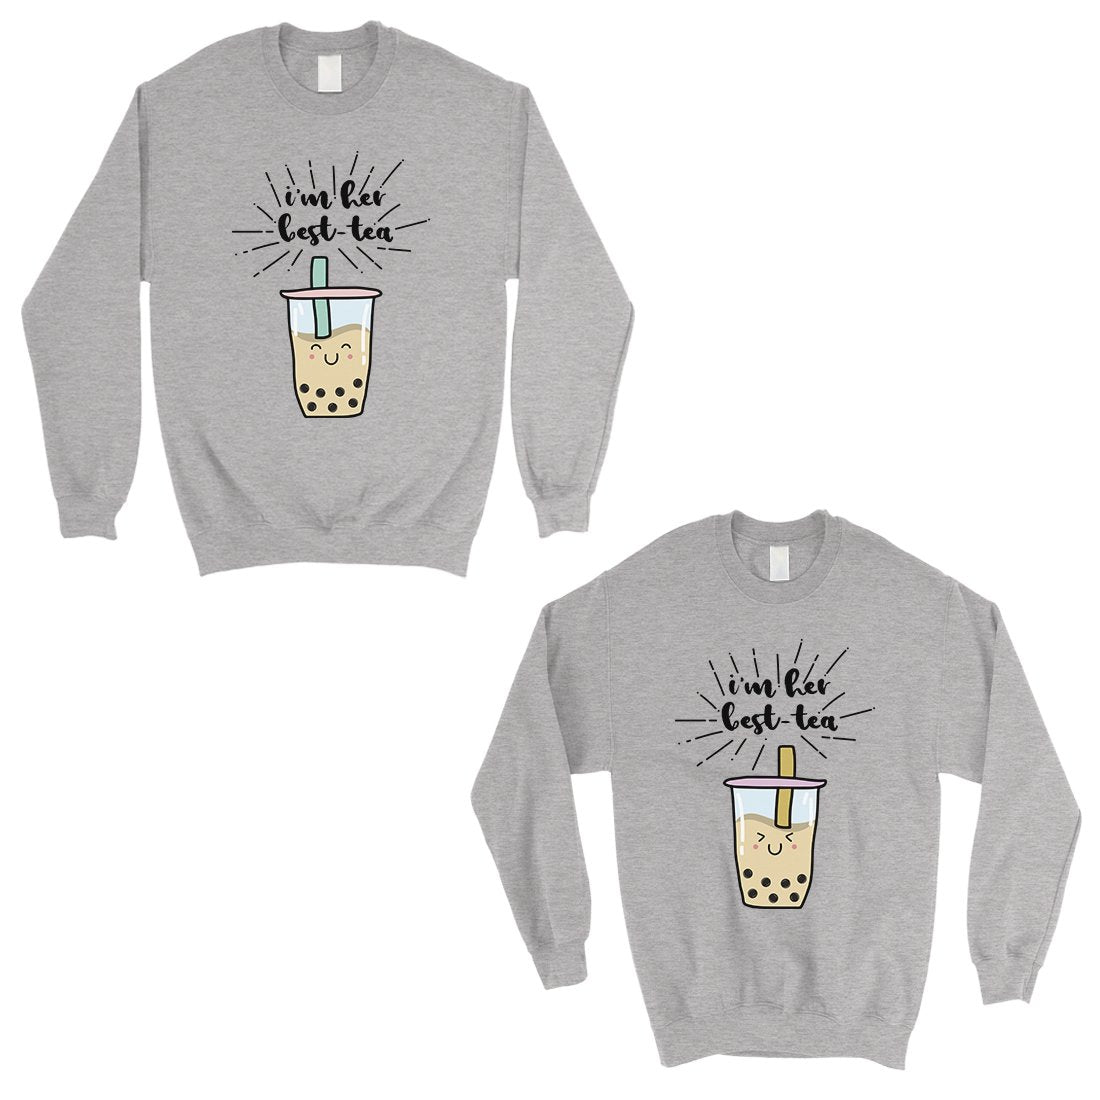 Boba Milk Best-Tea Cute BFF Matching Sweatshirts Birthday Gift